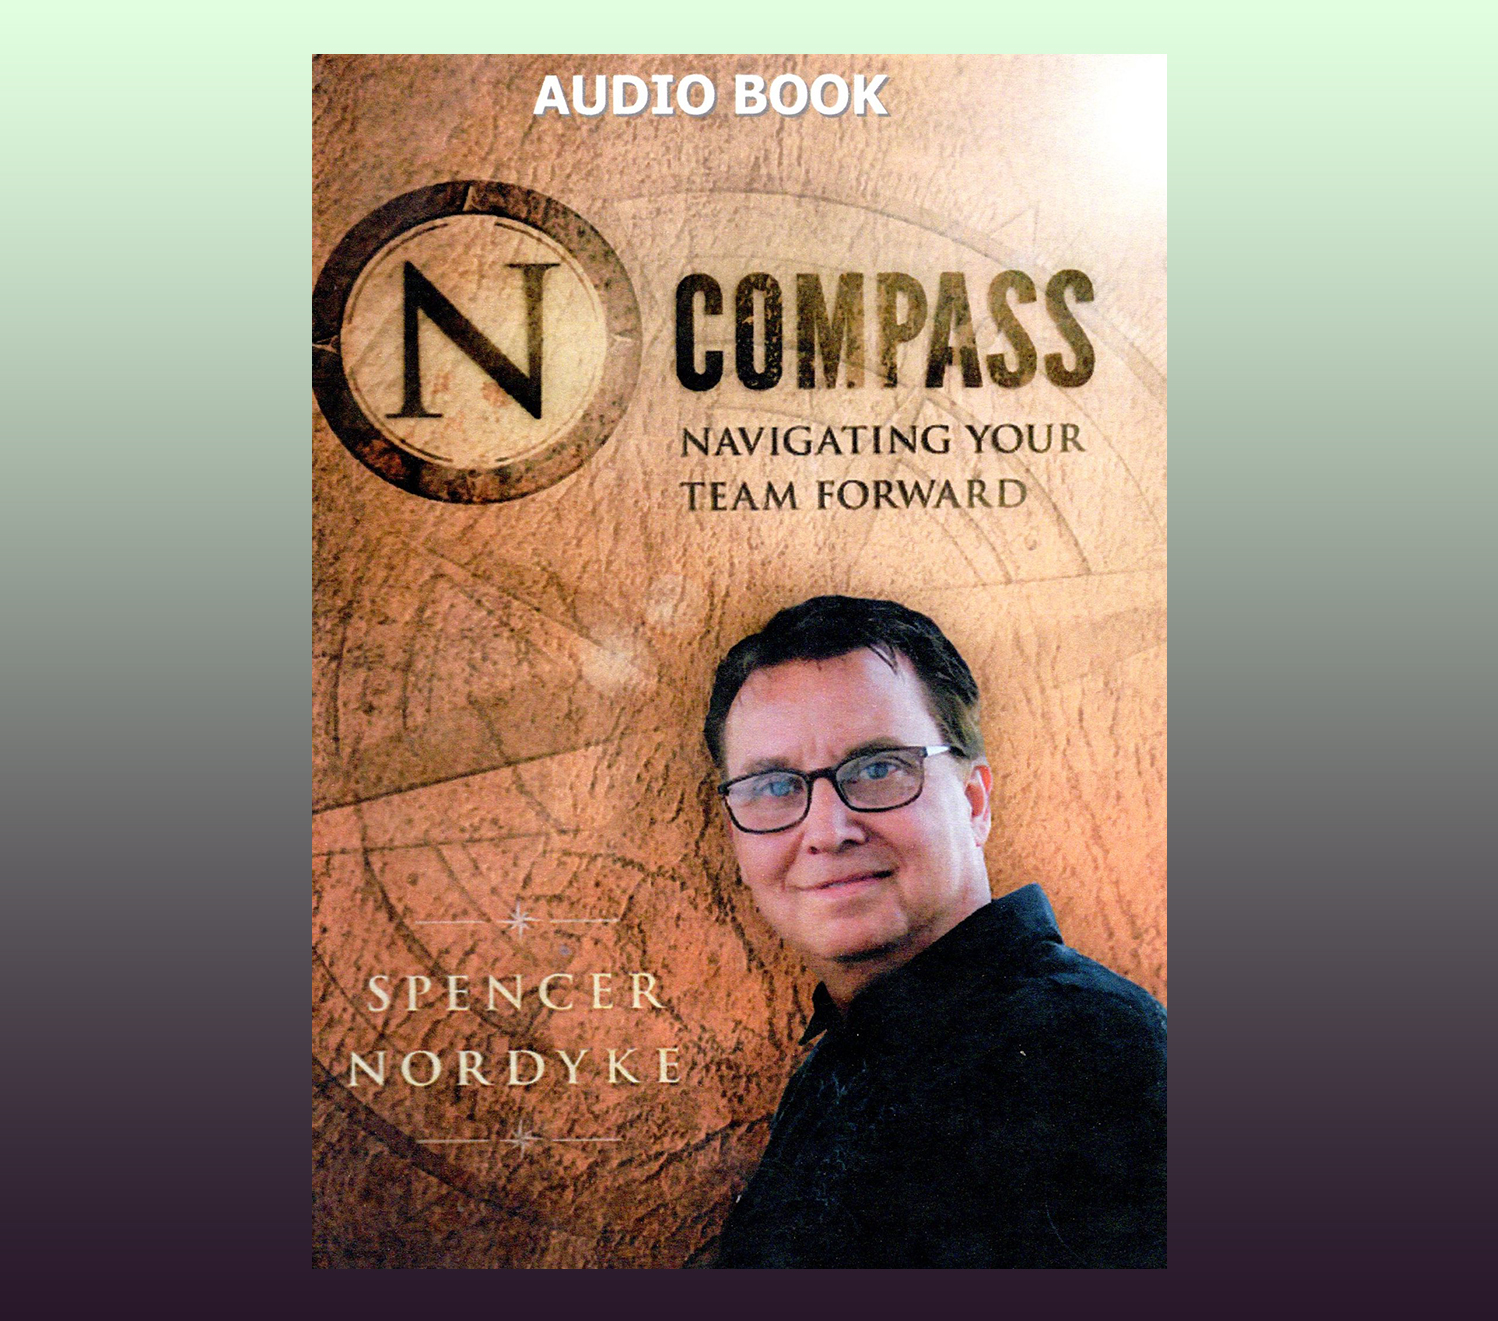 N-Compass Book Audio Book 4- CDs